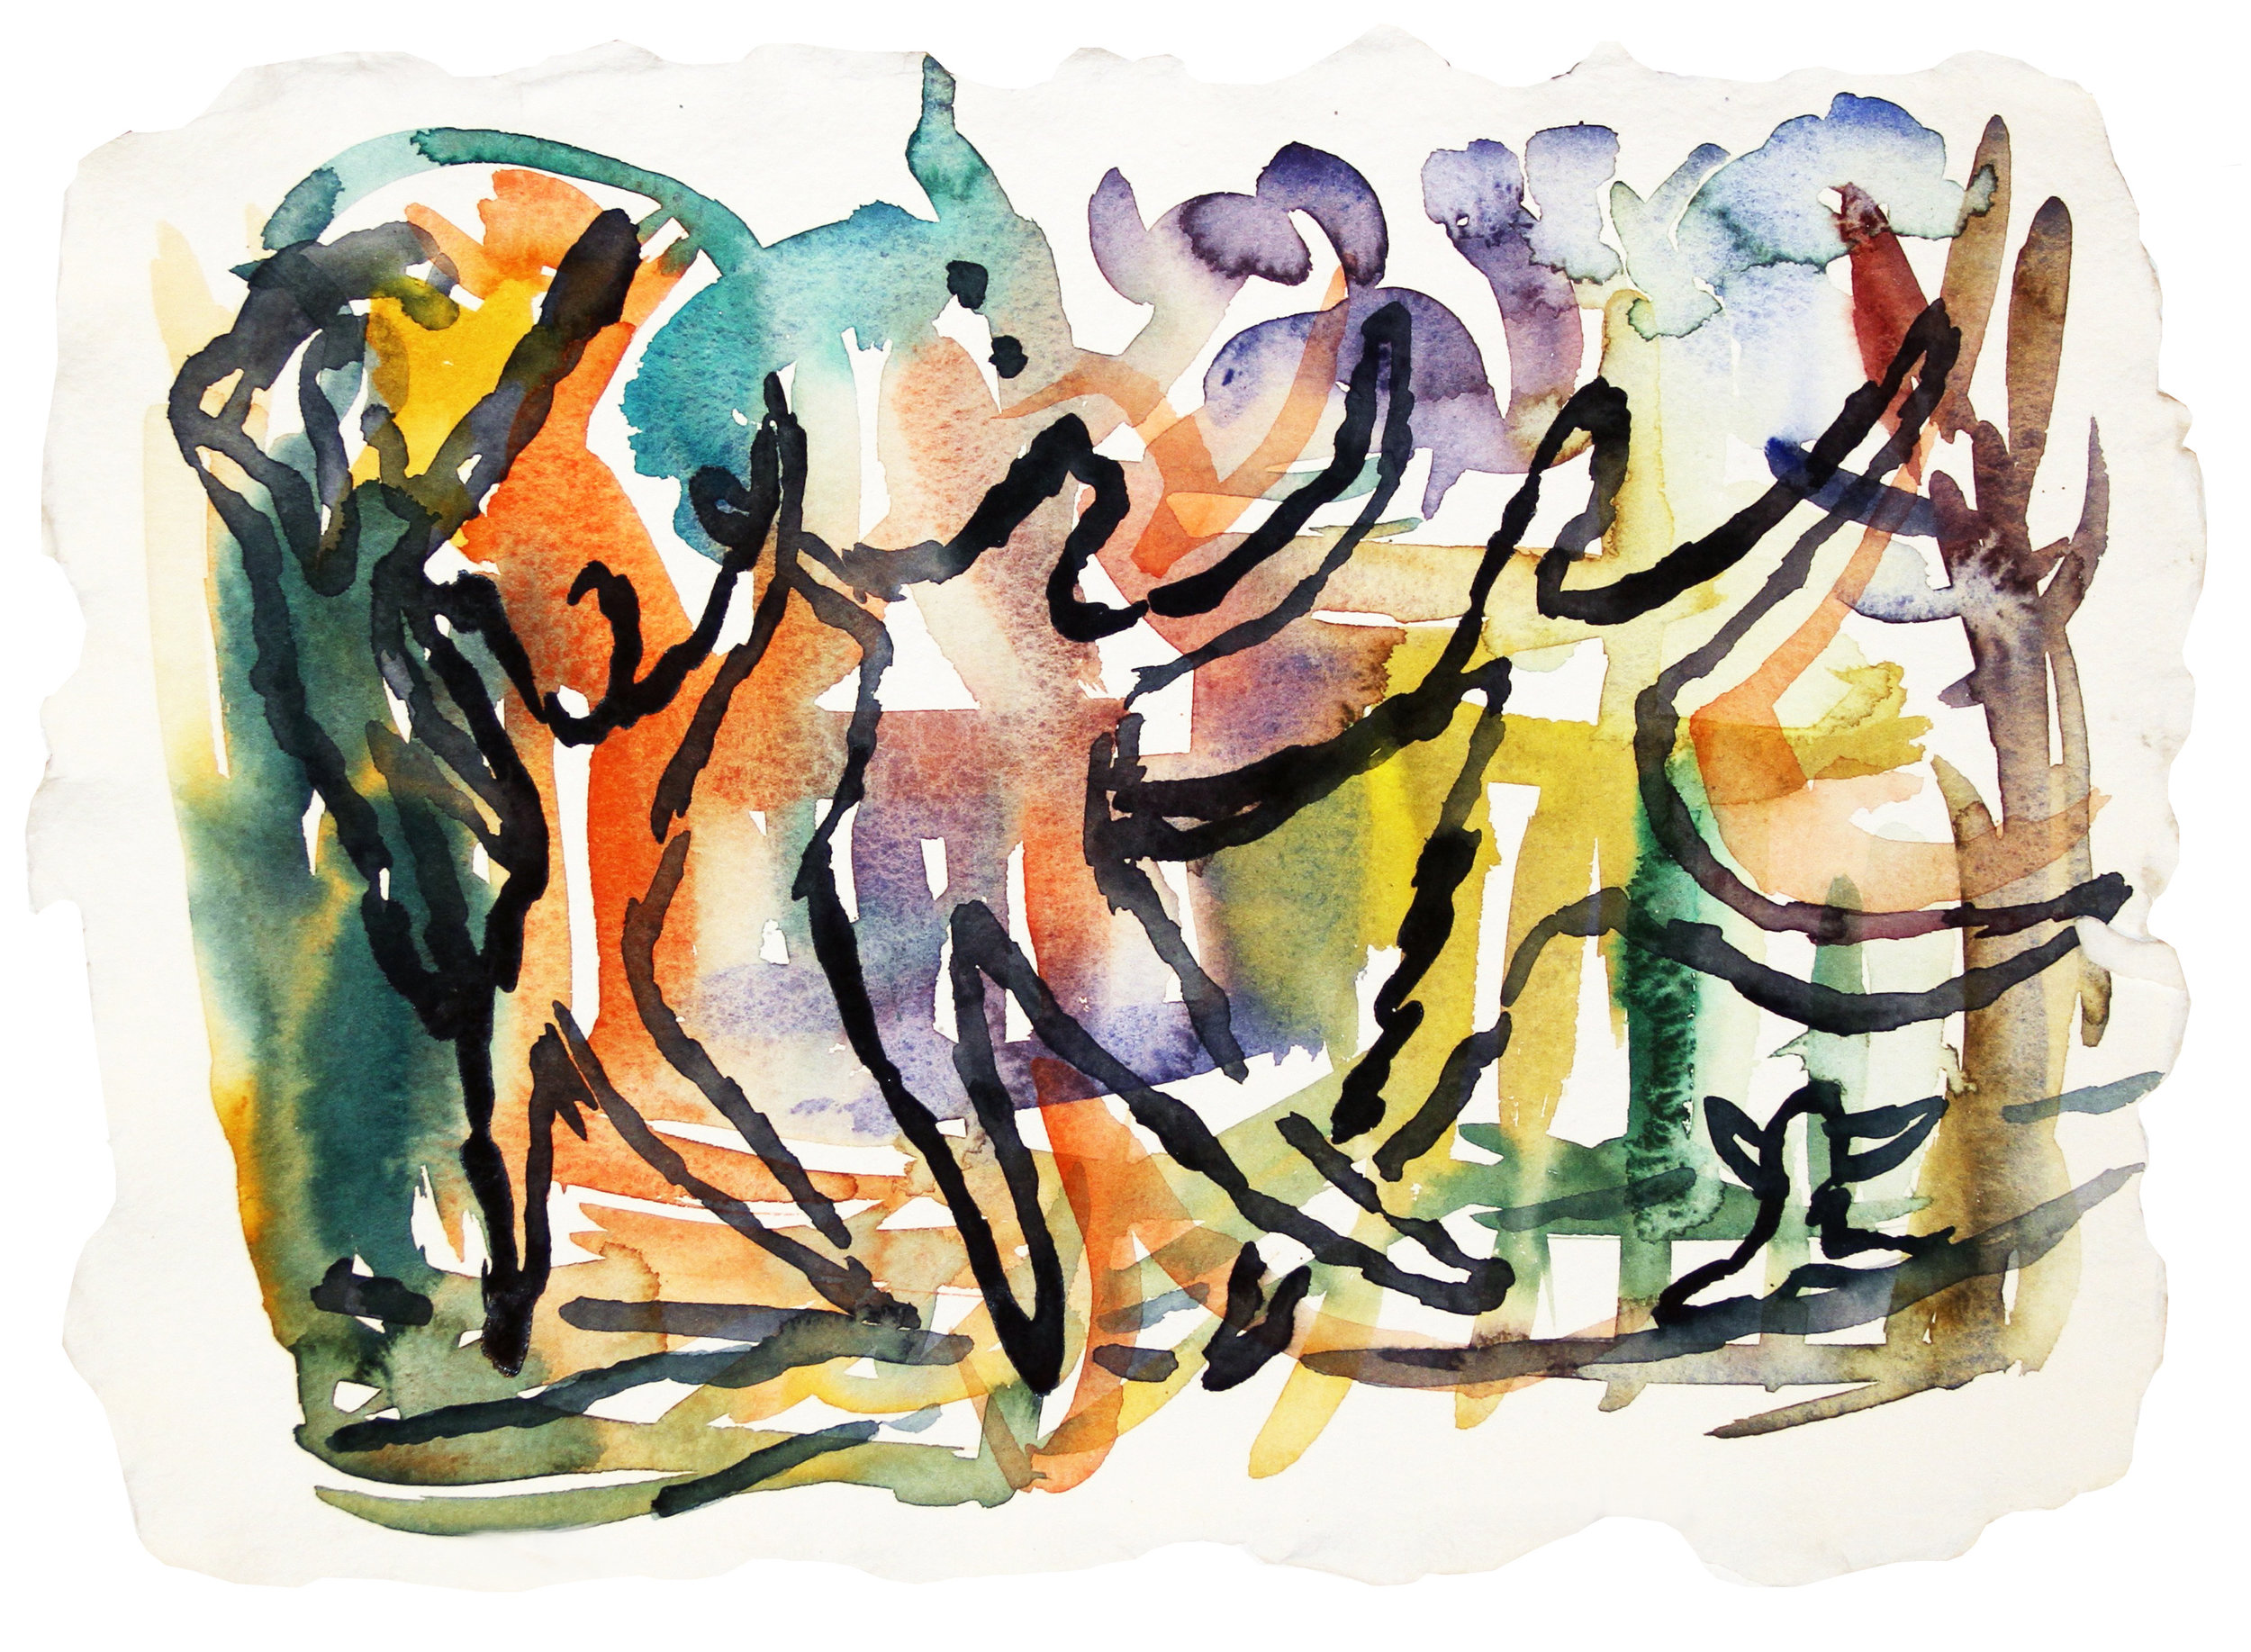 FIESTA  Watercolor on Paper 11 x 15 inches (28 x 35 cm)